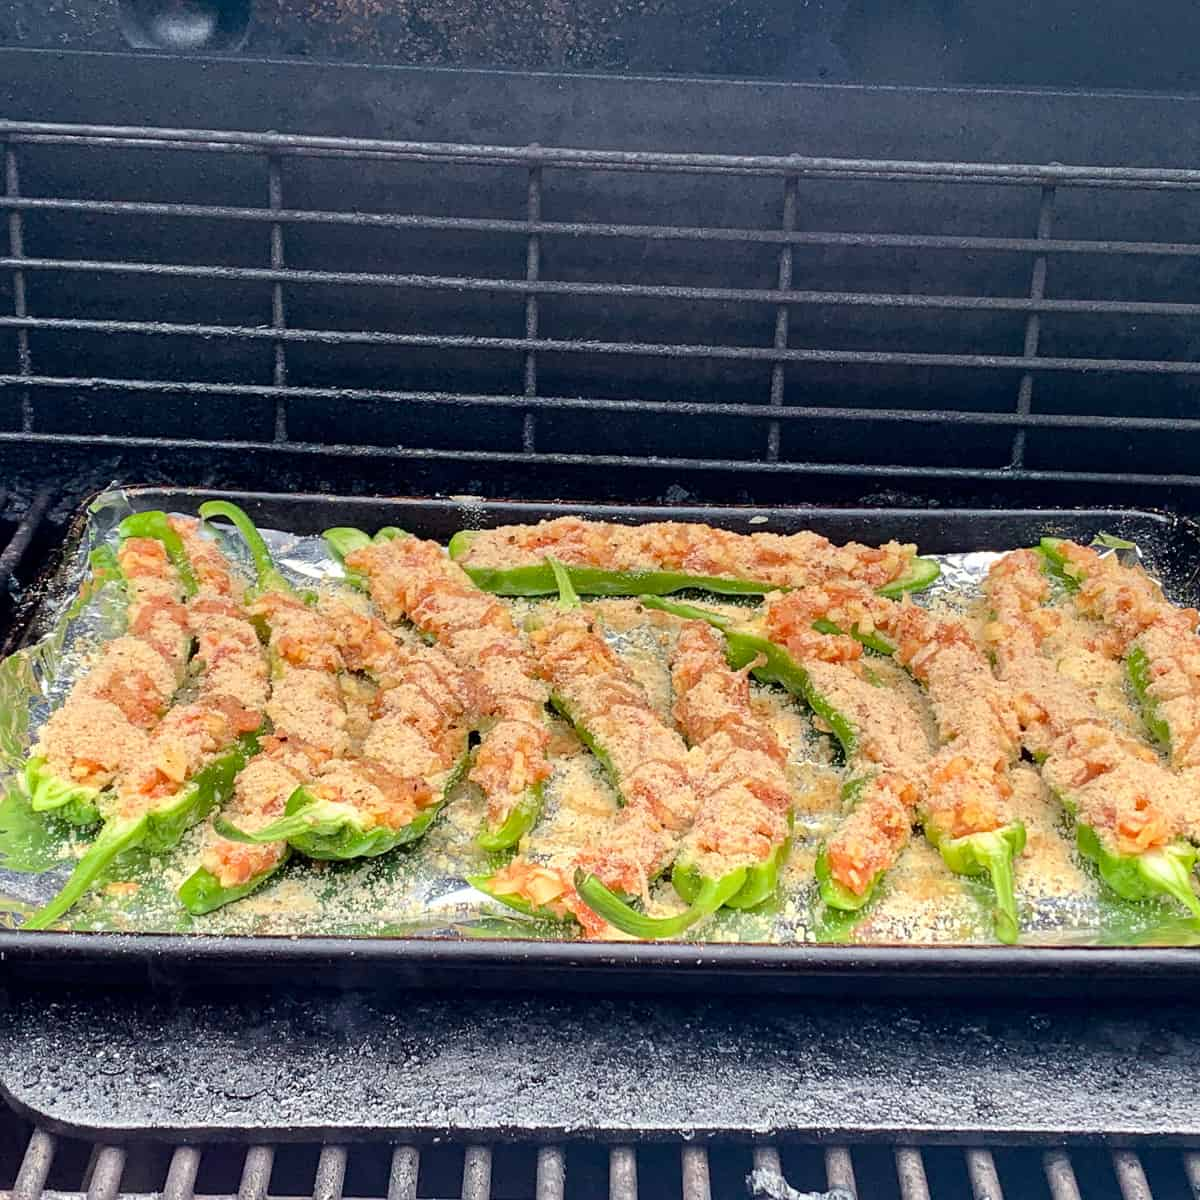 Italian long hots cooking on the grill